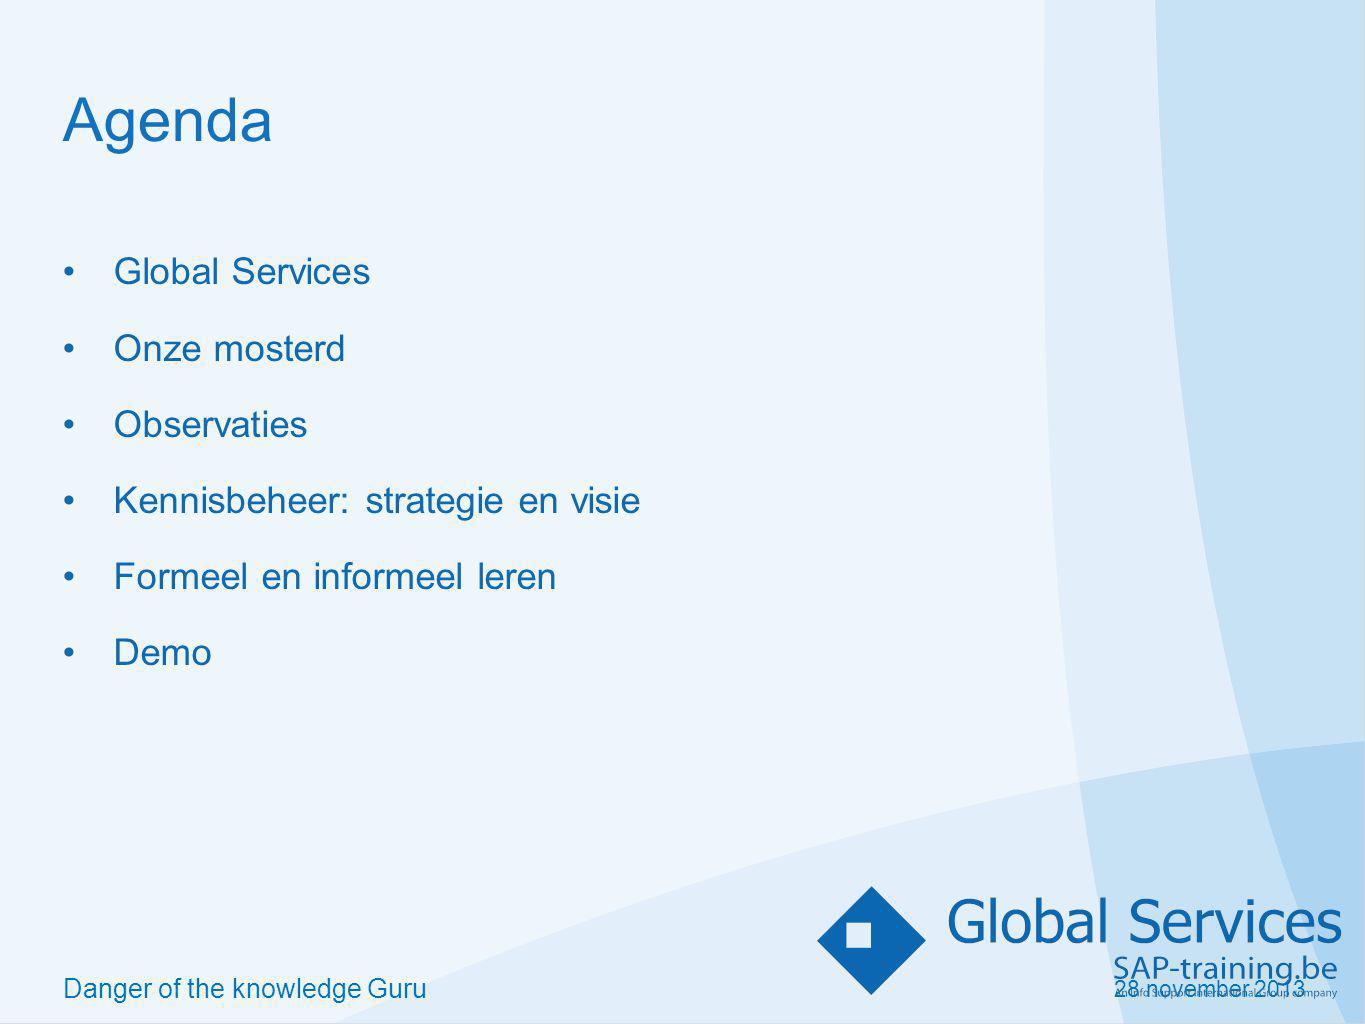 28 november 2013 Danger of the knowledge Guru Agenda Global Services Onze mosterd Observaties Kennisbeheer: strategie en visie Formeel en informeel leren Demo